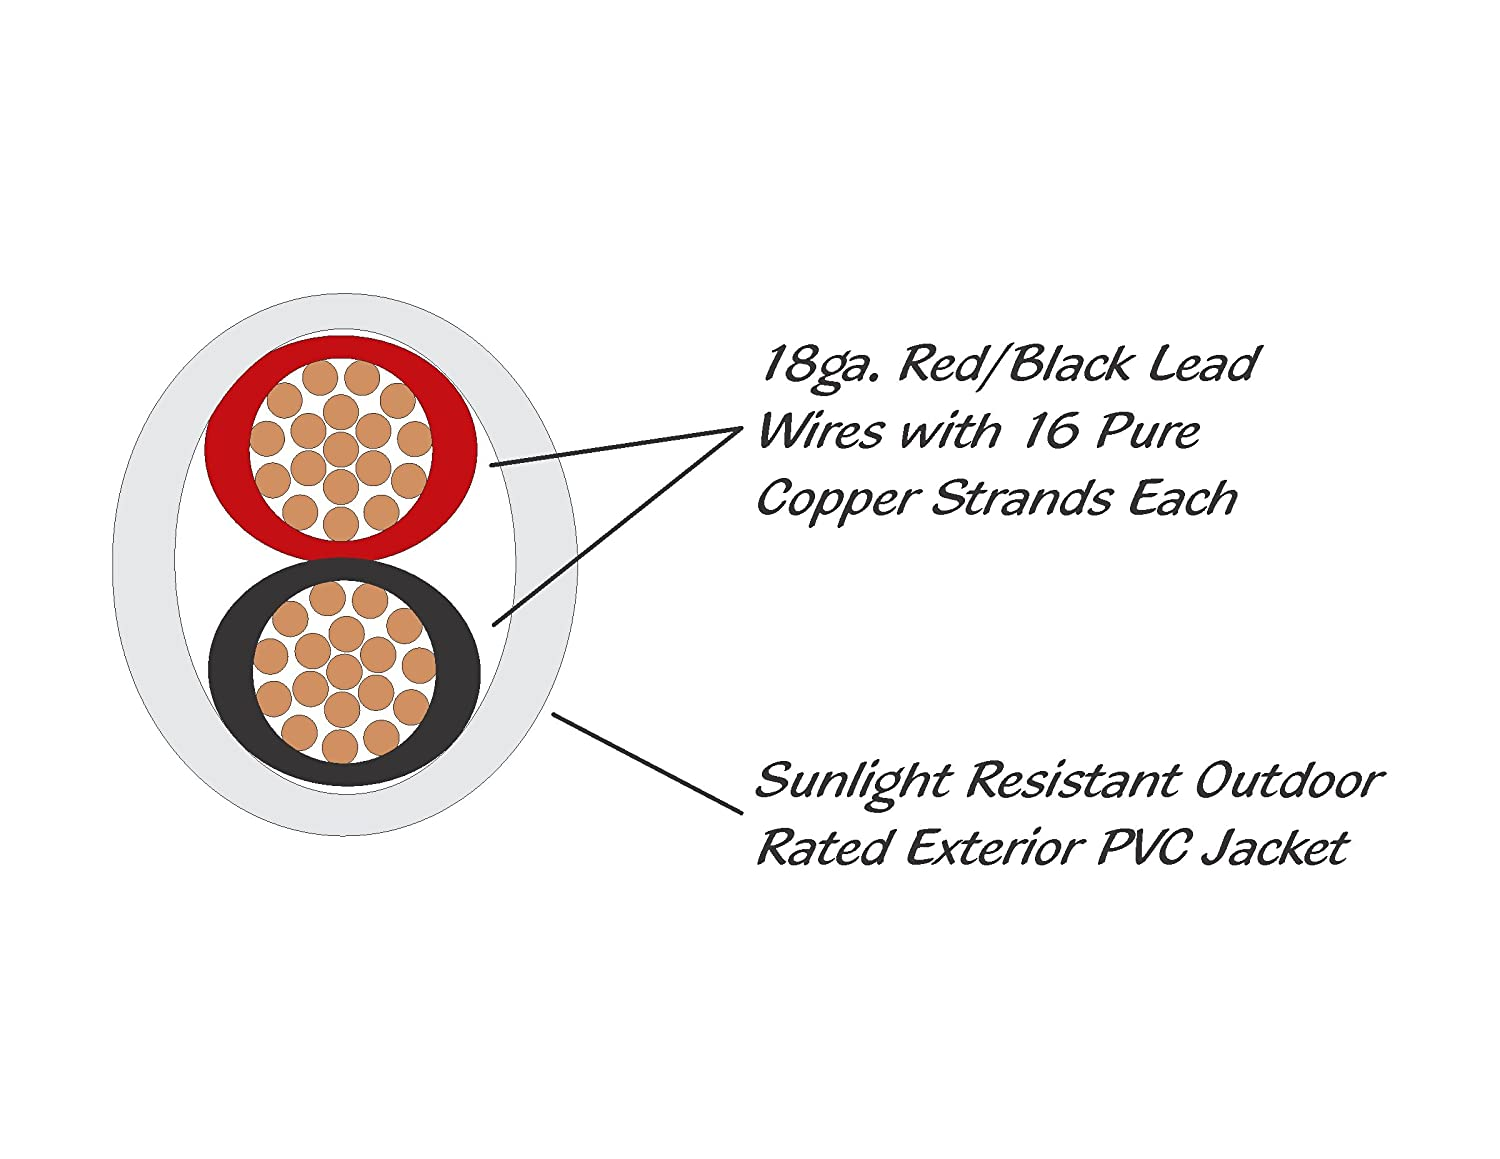 18awg Low Voltage Led Cable 2 Conductor Outdoor Rated Sloanled Stripe Wire Diagram Jacketed In Wall Speaker Ul Cul Class Sunlight Resistant 100ft Reel Sports